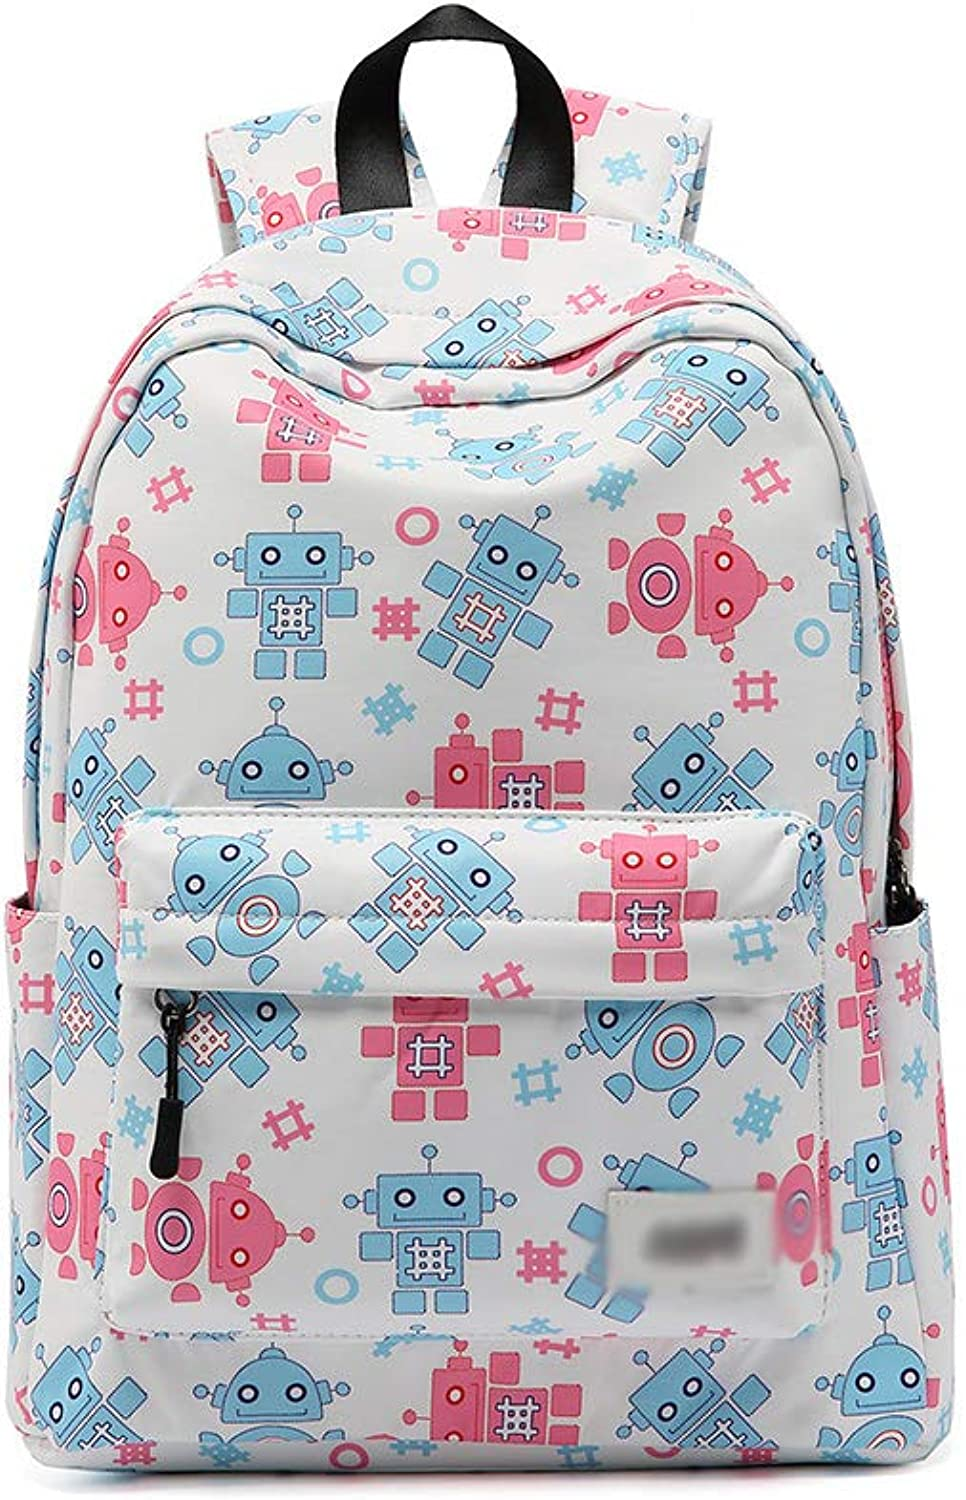 XHHWZB School Bookbags for Girls, Cute Floral WaterResistant Laptop Backpack College Bags Light Daypack by